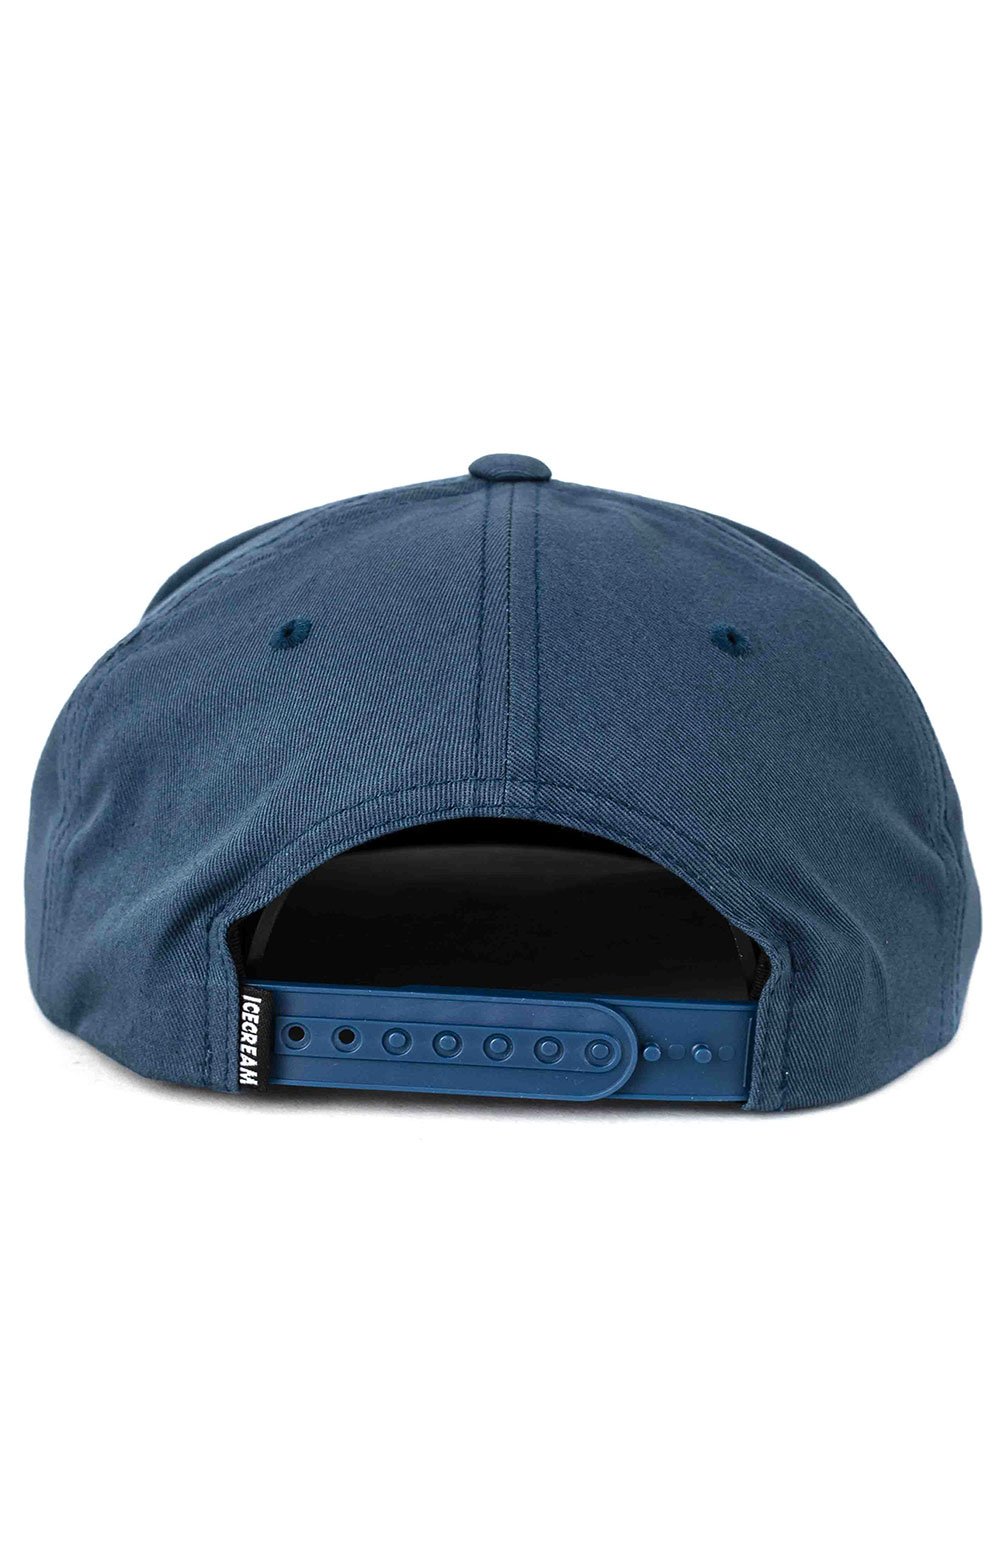 Green Cone Snap-Back Hat - Midnight  3